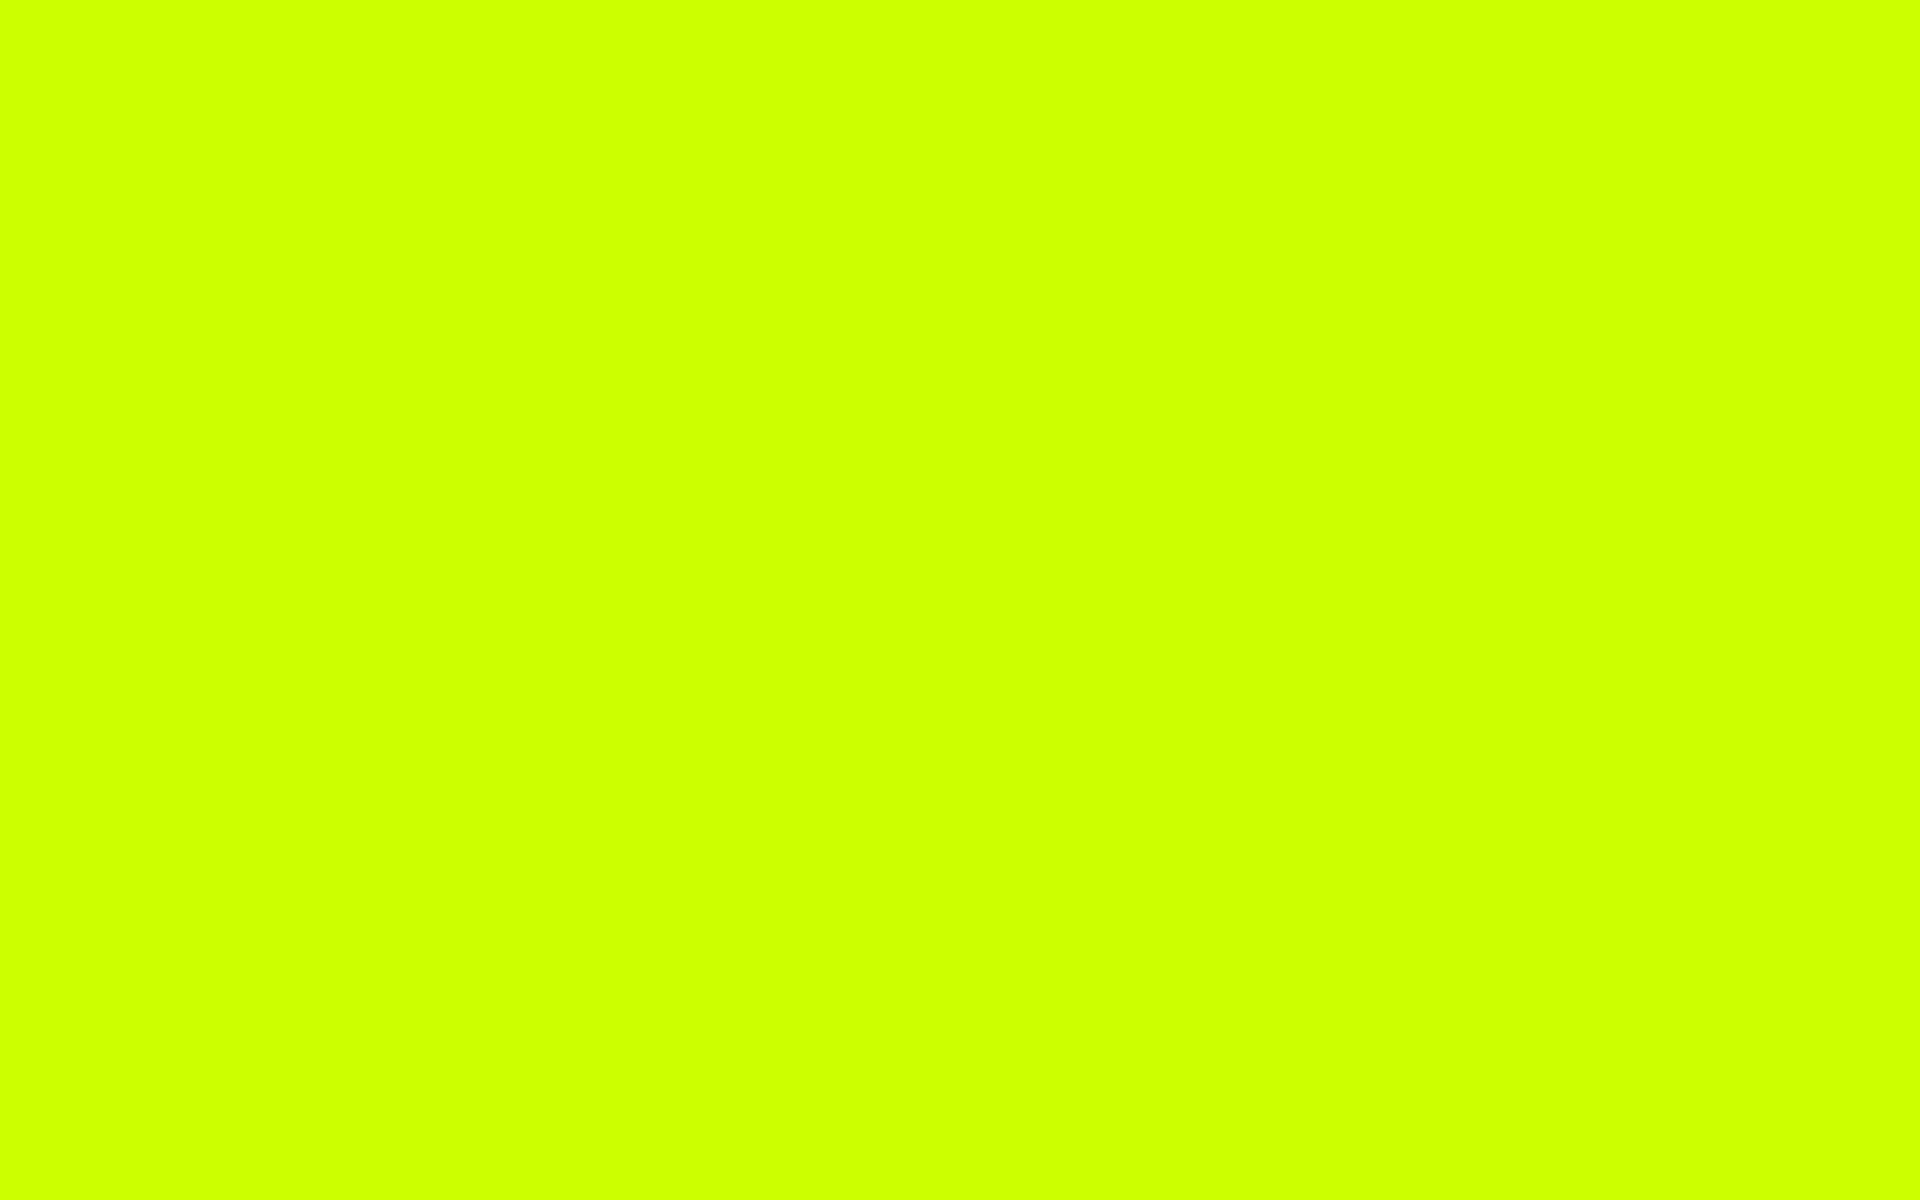 1920x1200 Fluorescent Yellow Solid Color Background